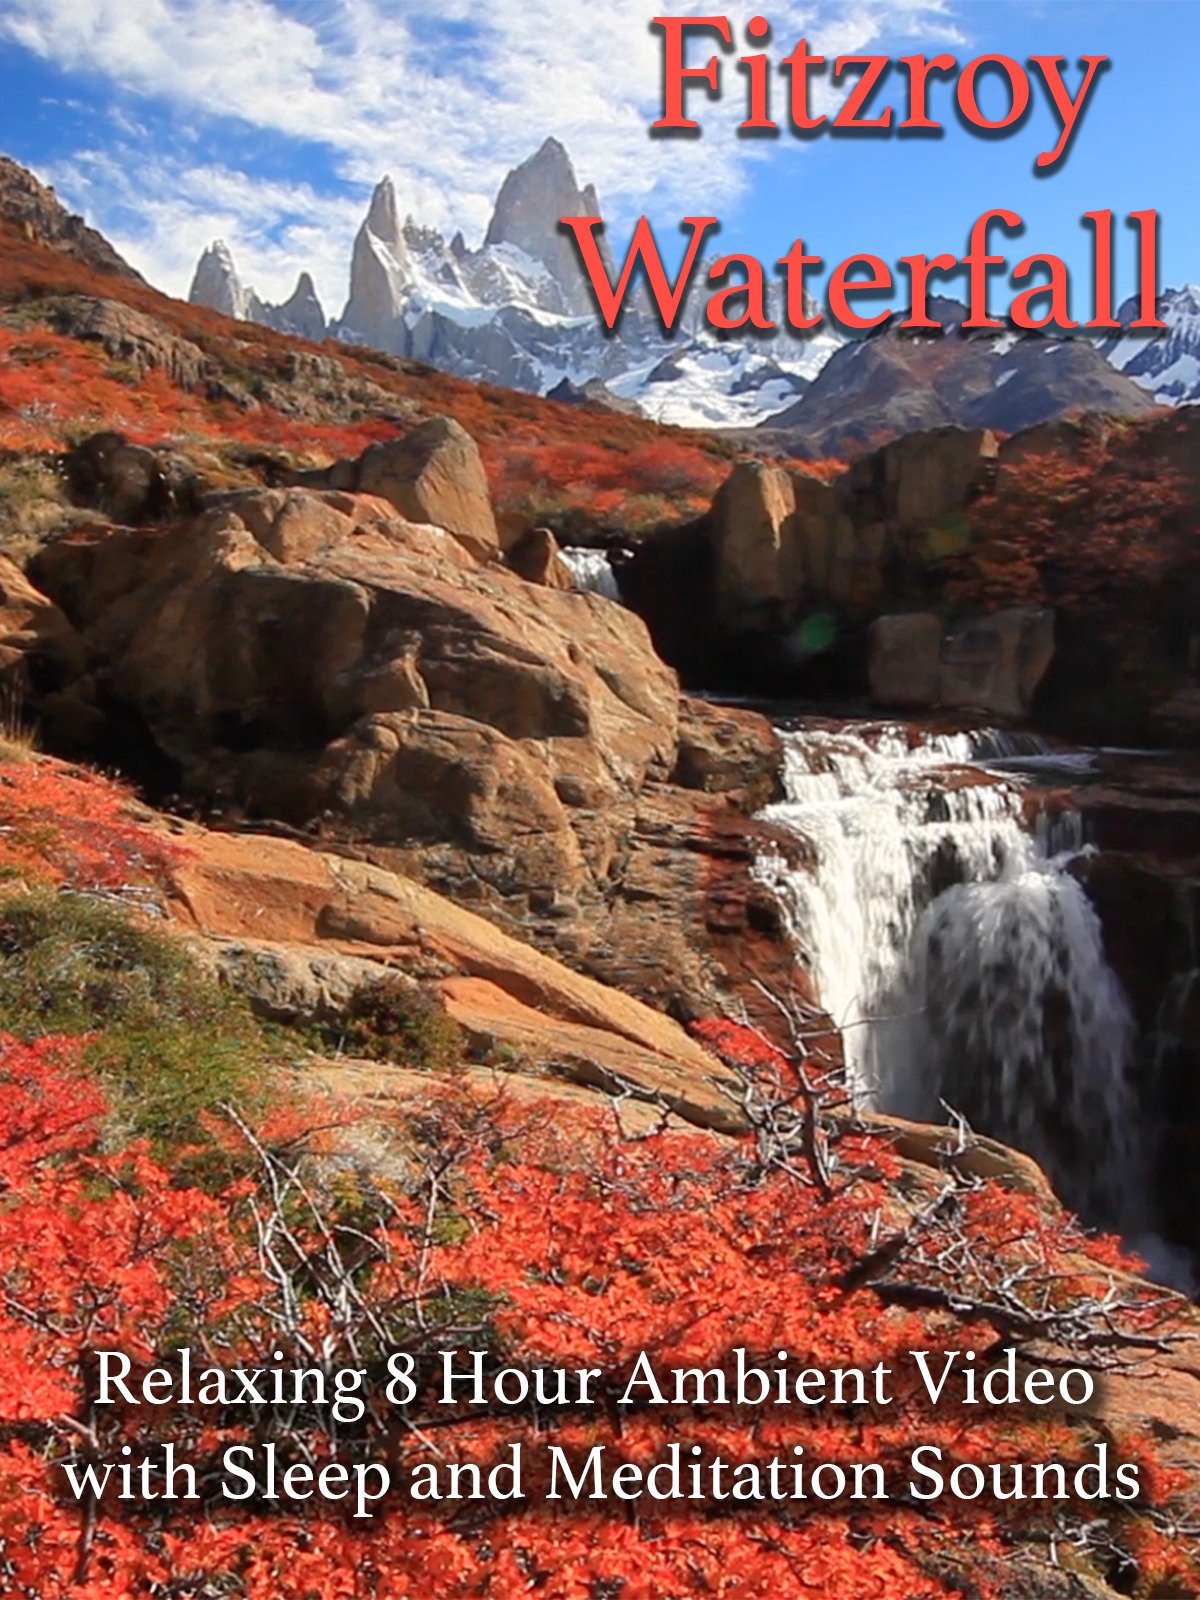 Fitzroy Waterfall Relaxing 8 Hour Ambient Video with Sleep and Meditation Sounds